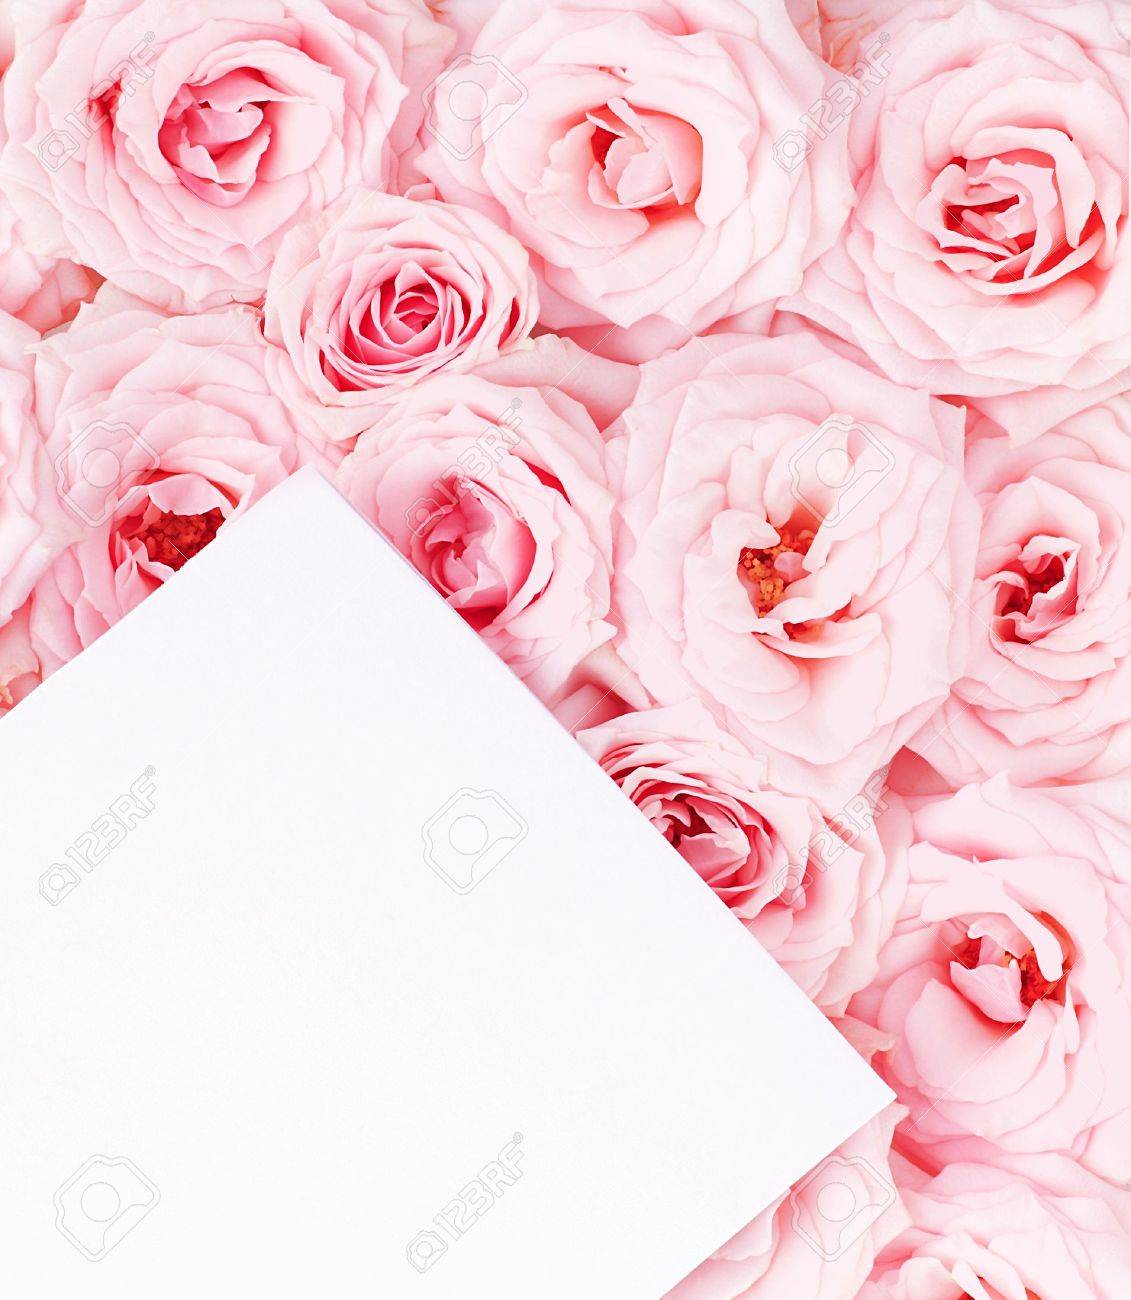 Pink fresh roses background with blank paper greeting card Stock Photo - 9590397